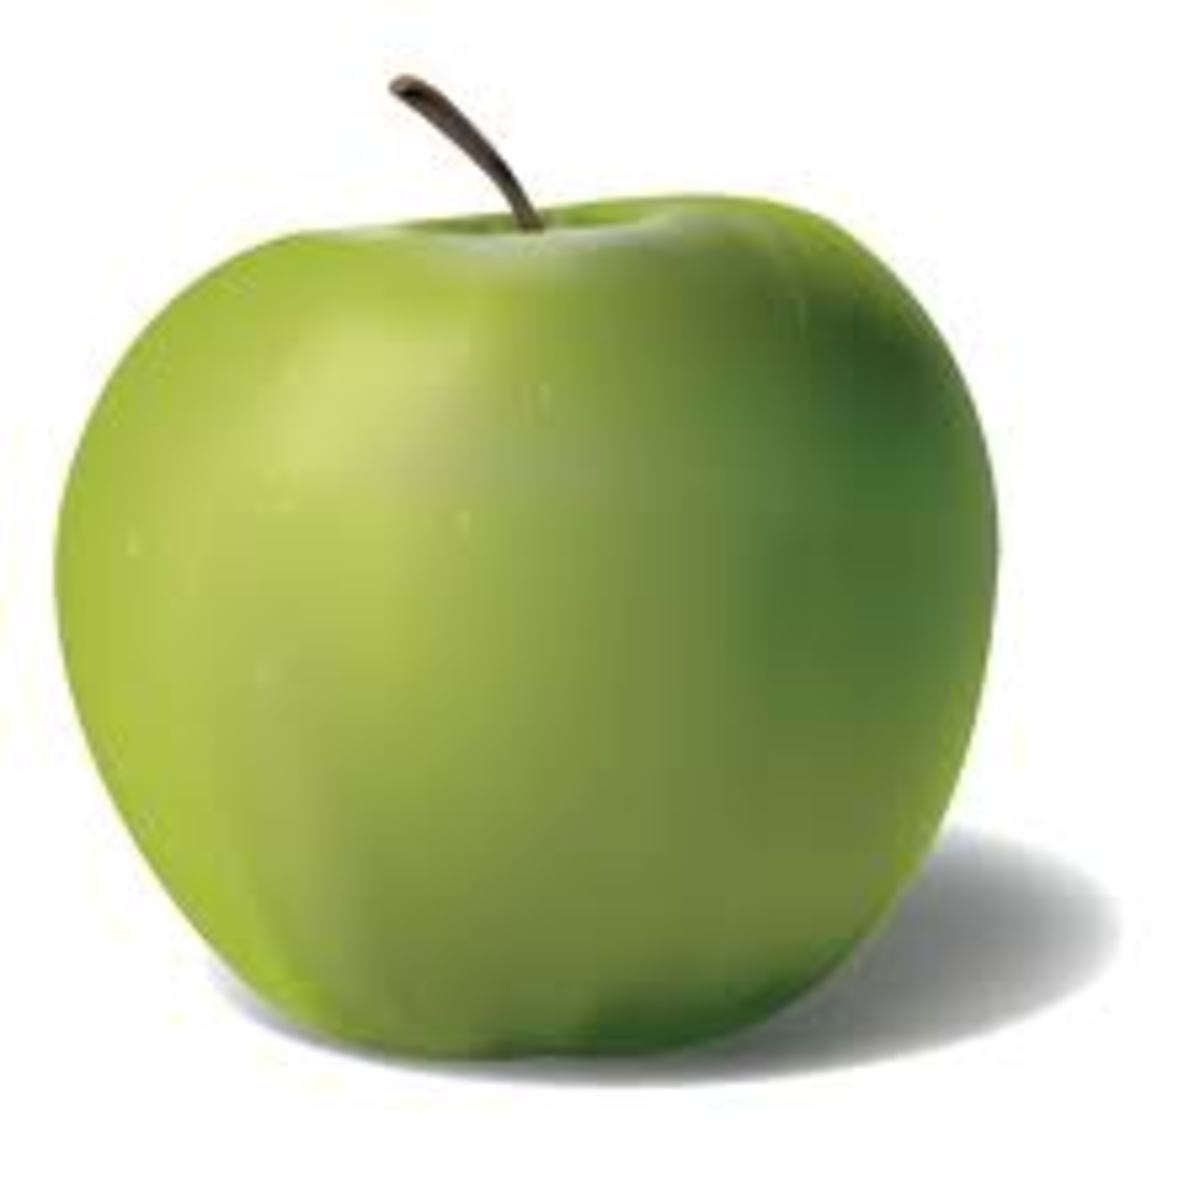 the-earth-could-fit-into-an-apple-theoretically